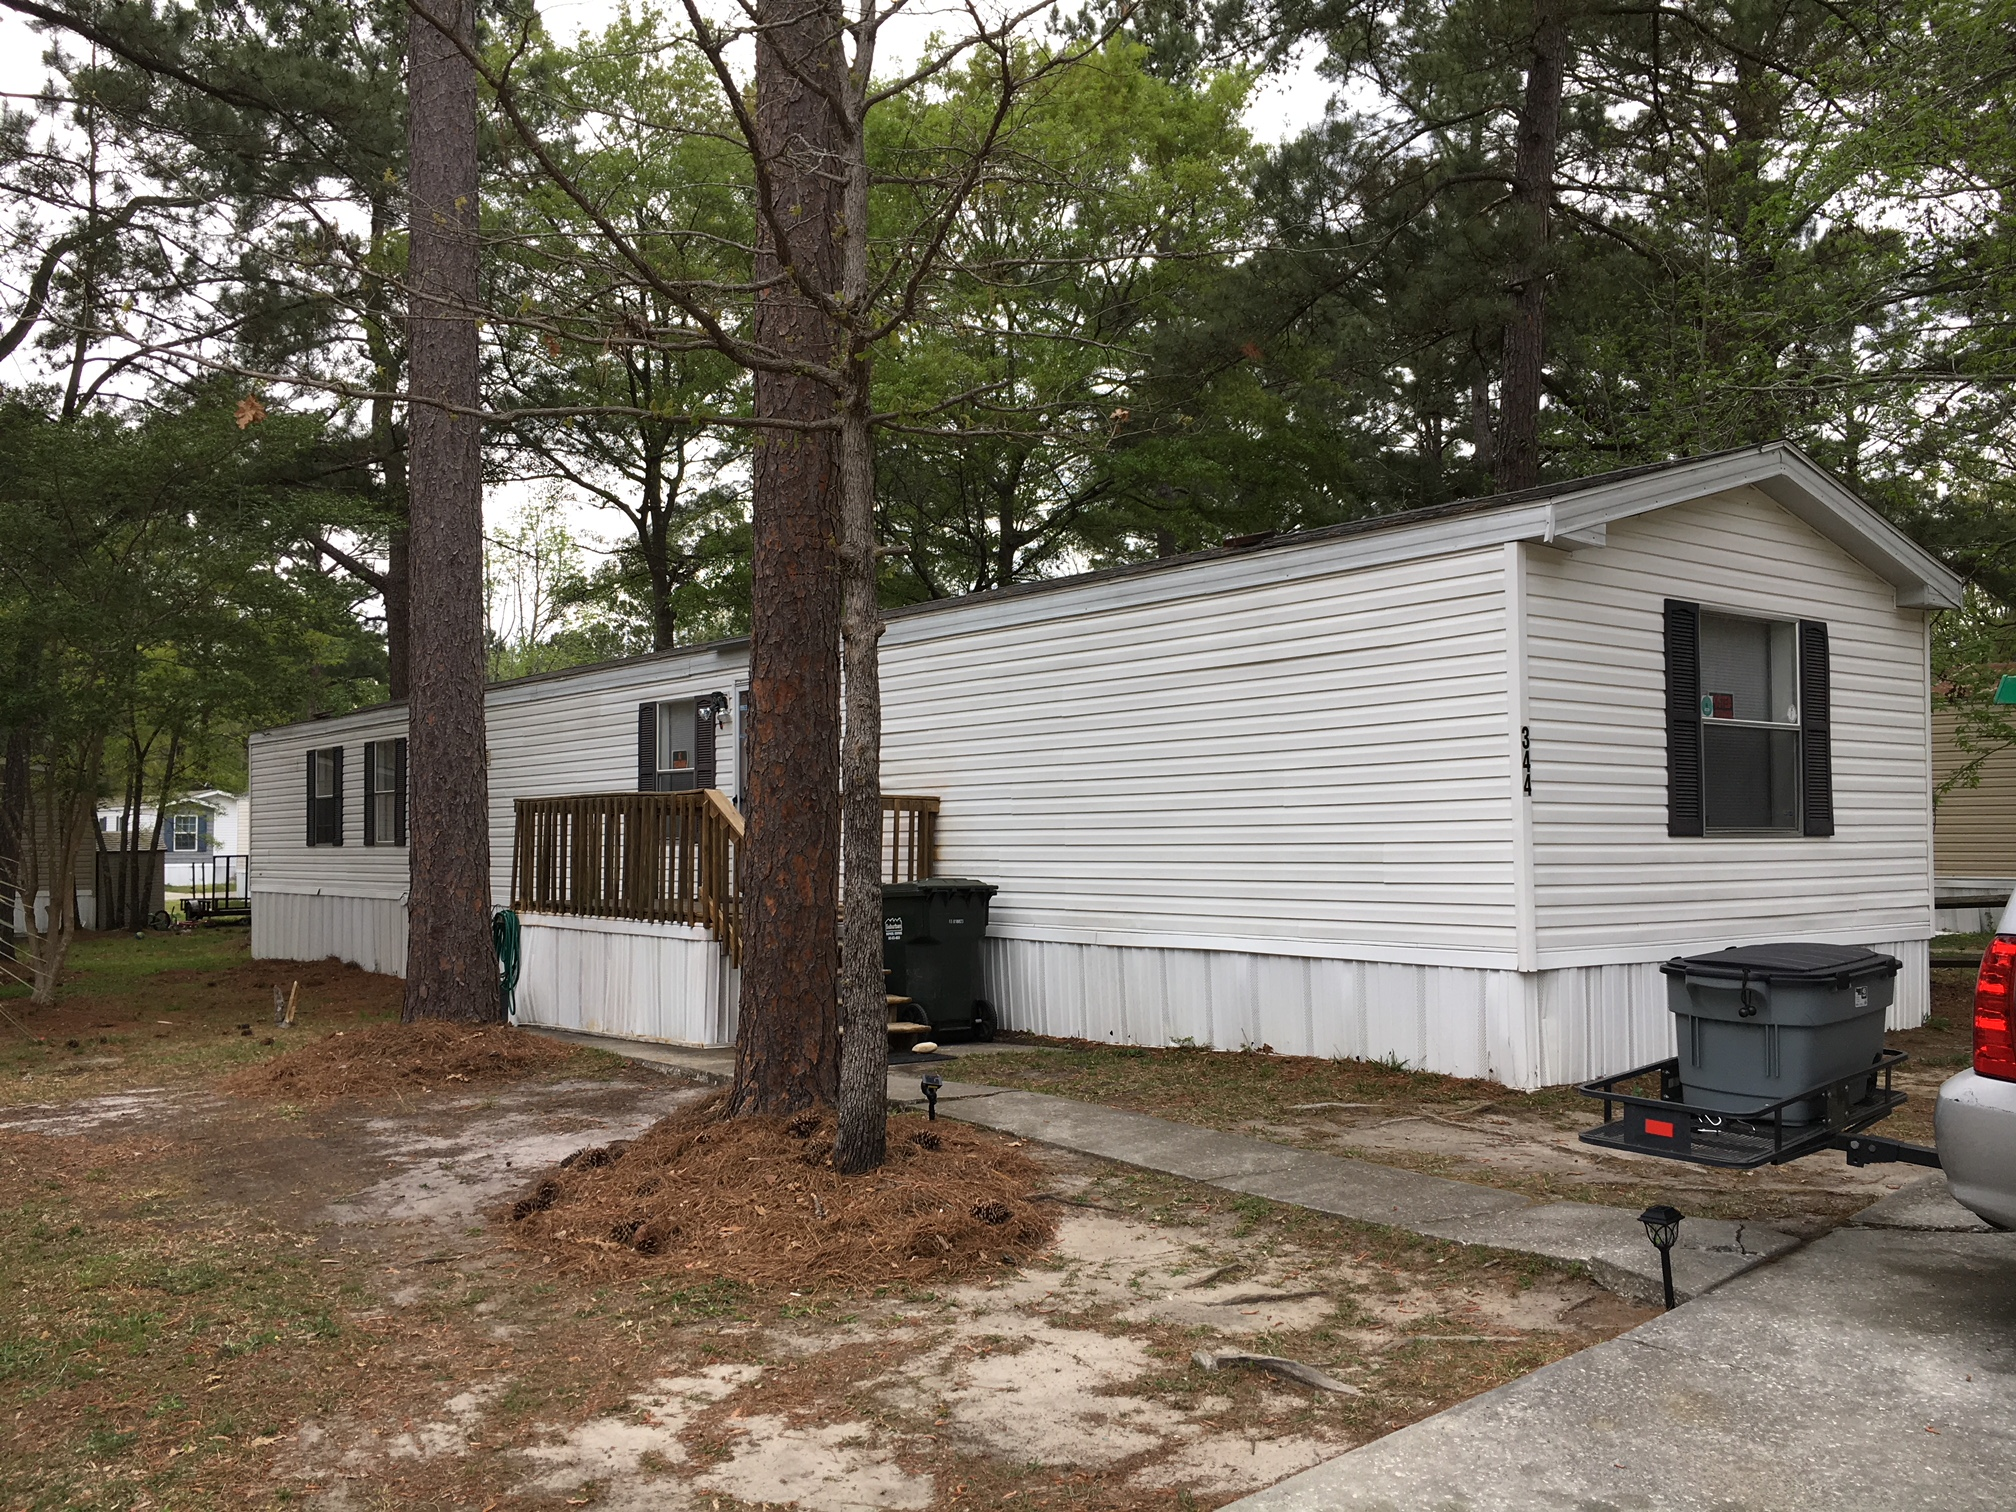 Mobile Homes Buy OR Rent to Own Summerville 4bd-3bd 2bd on mobile alabama historic homes tour, mobile homes tyler texas, mobile homes new york,